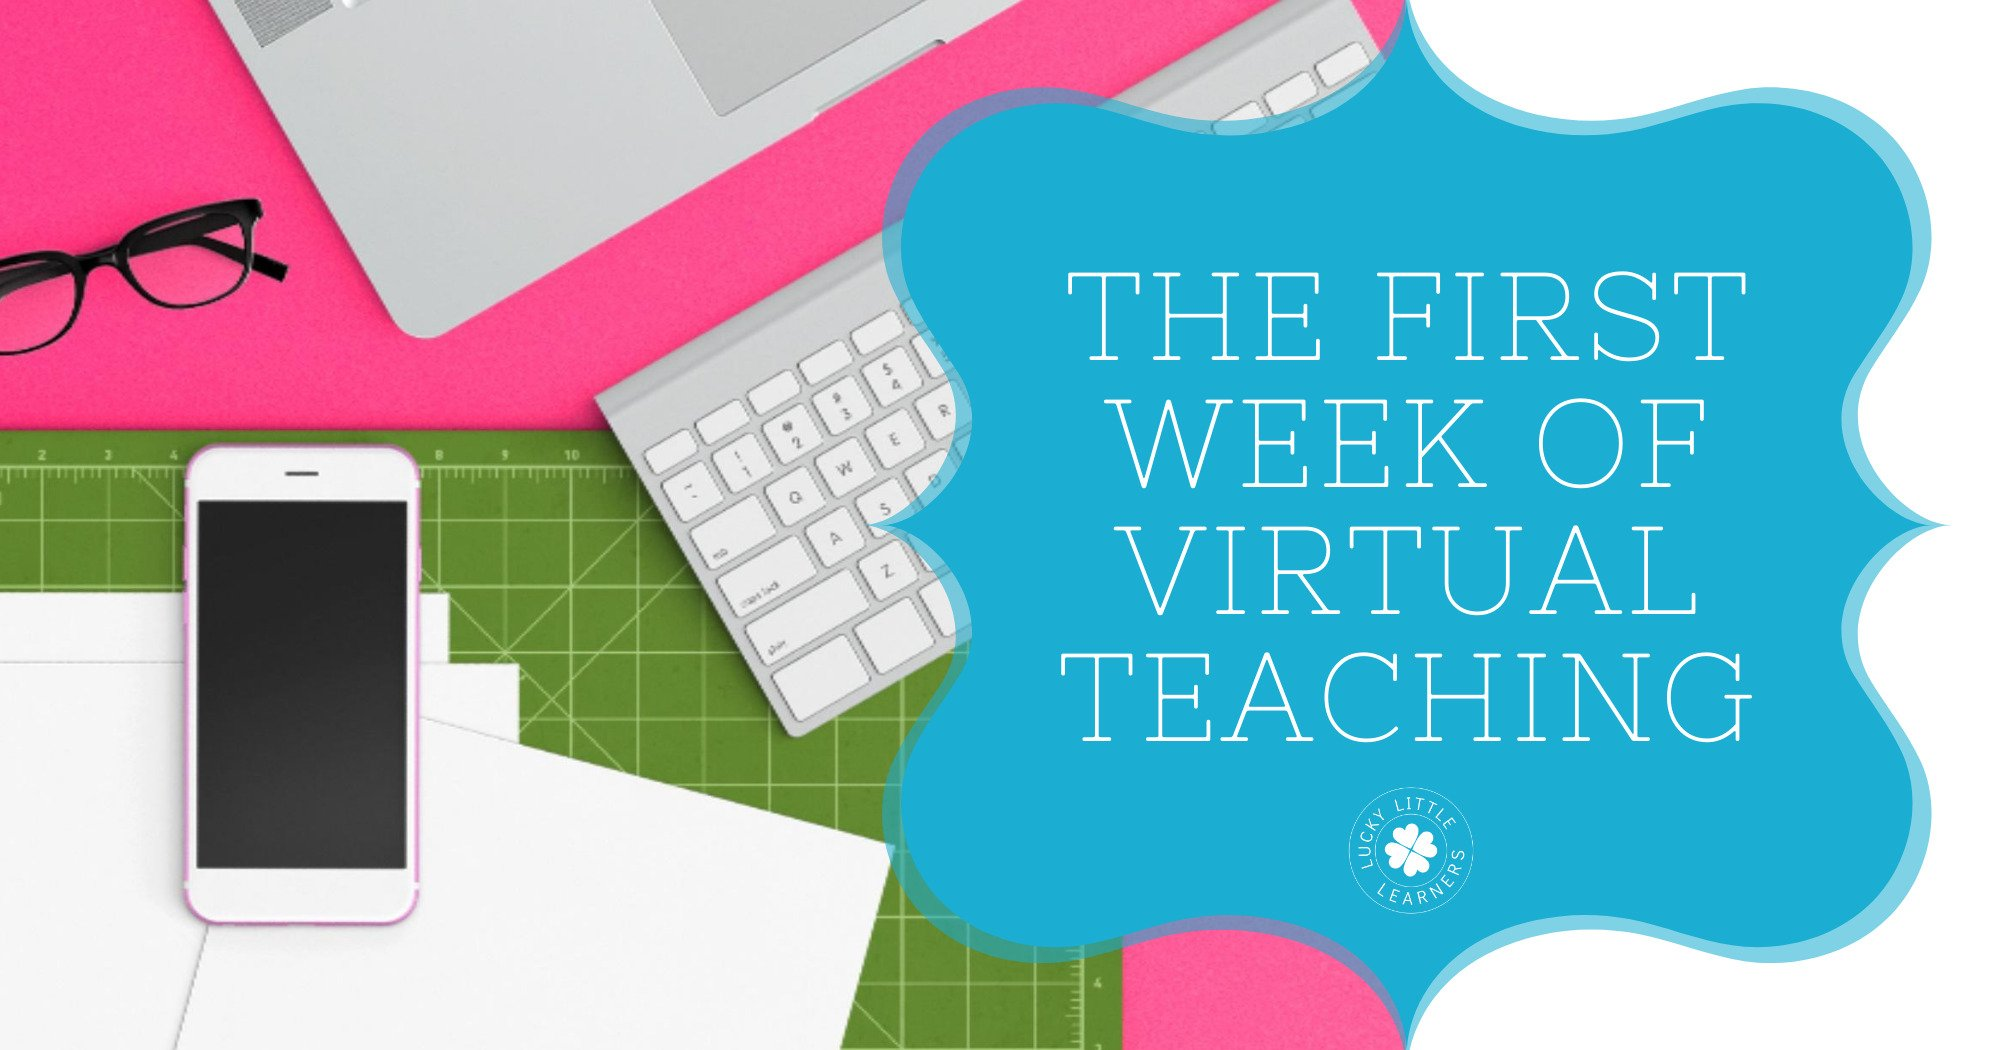 The First Week of Virtual Teaching